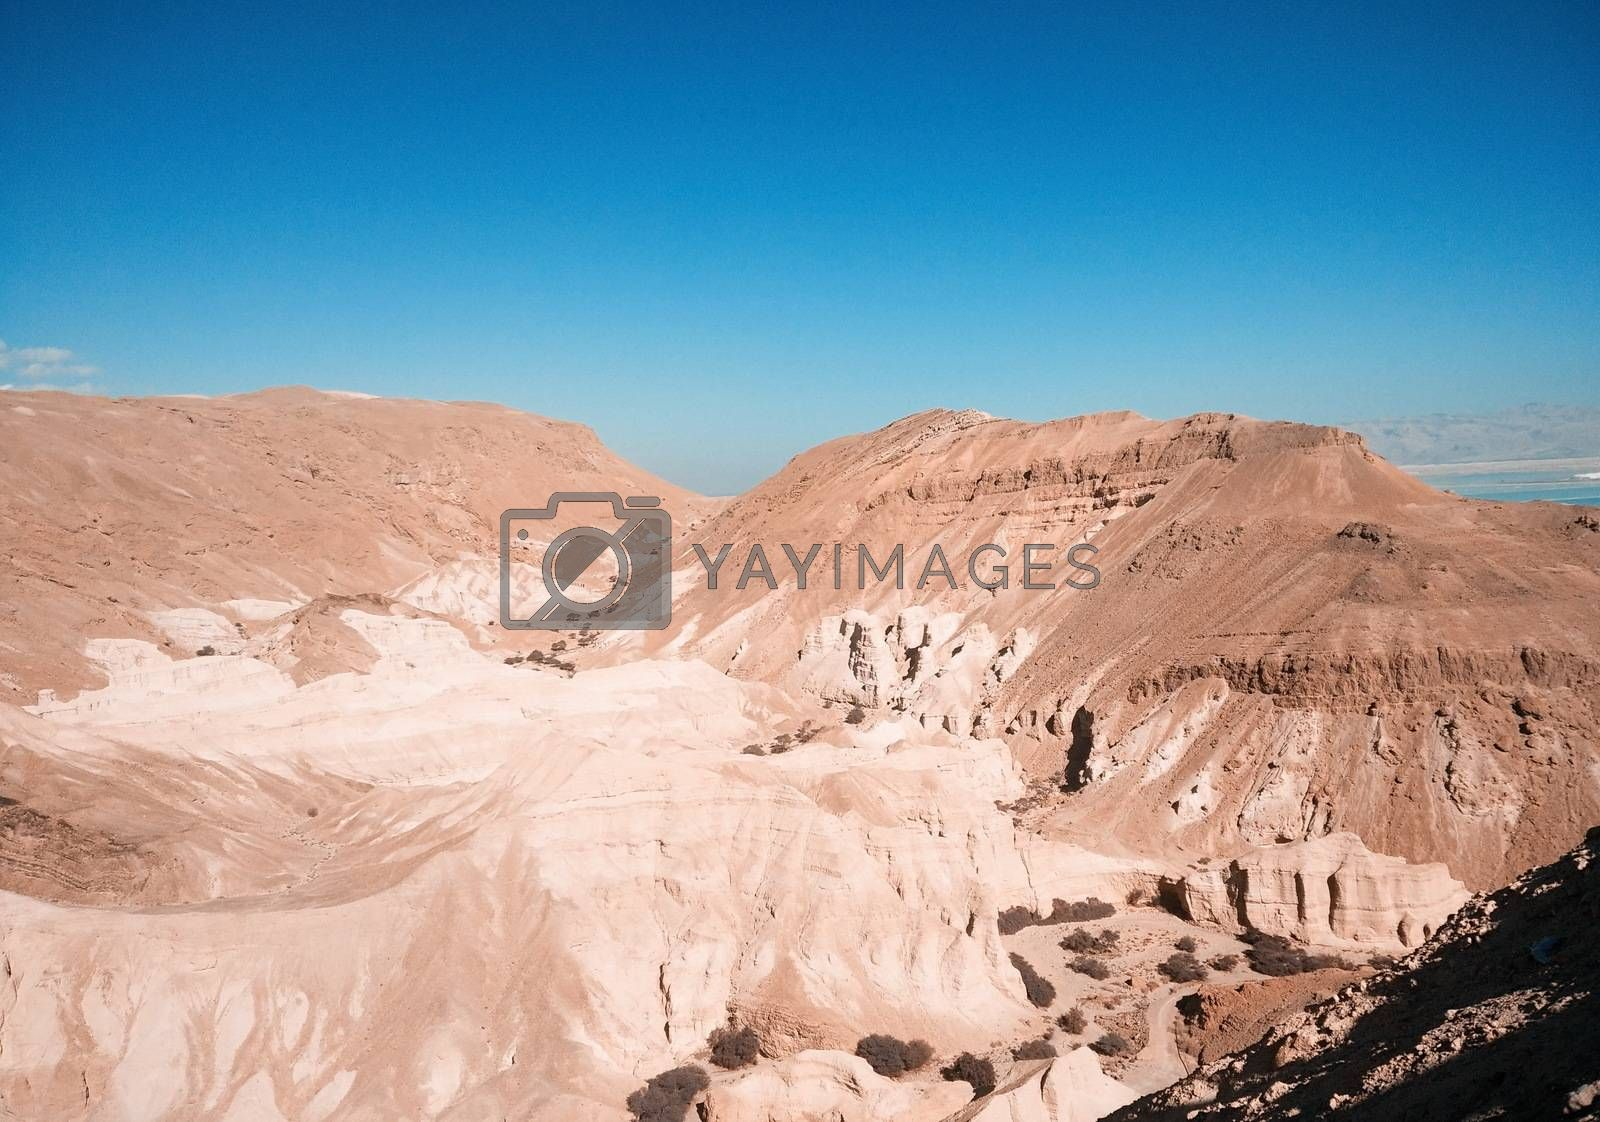 Mountains in Israel Negev desert. Dead Sea region